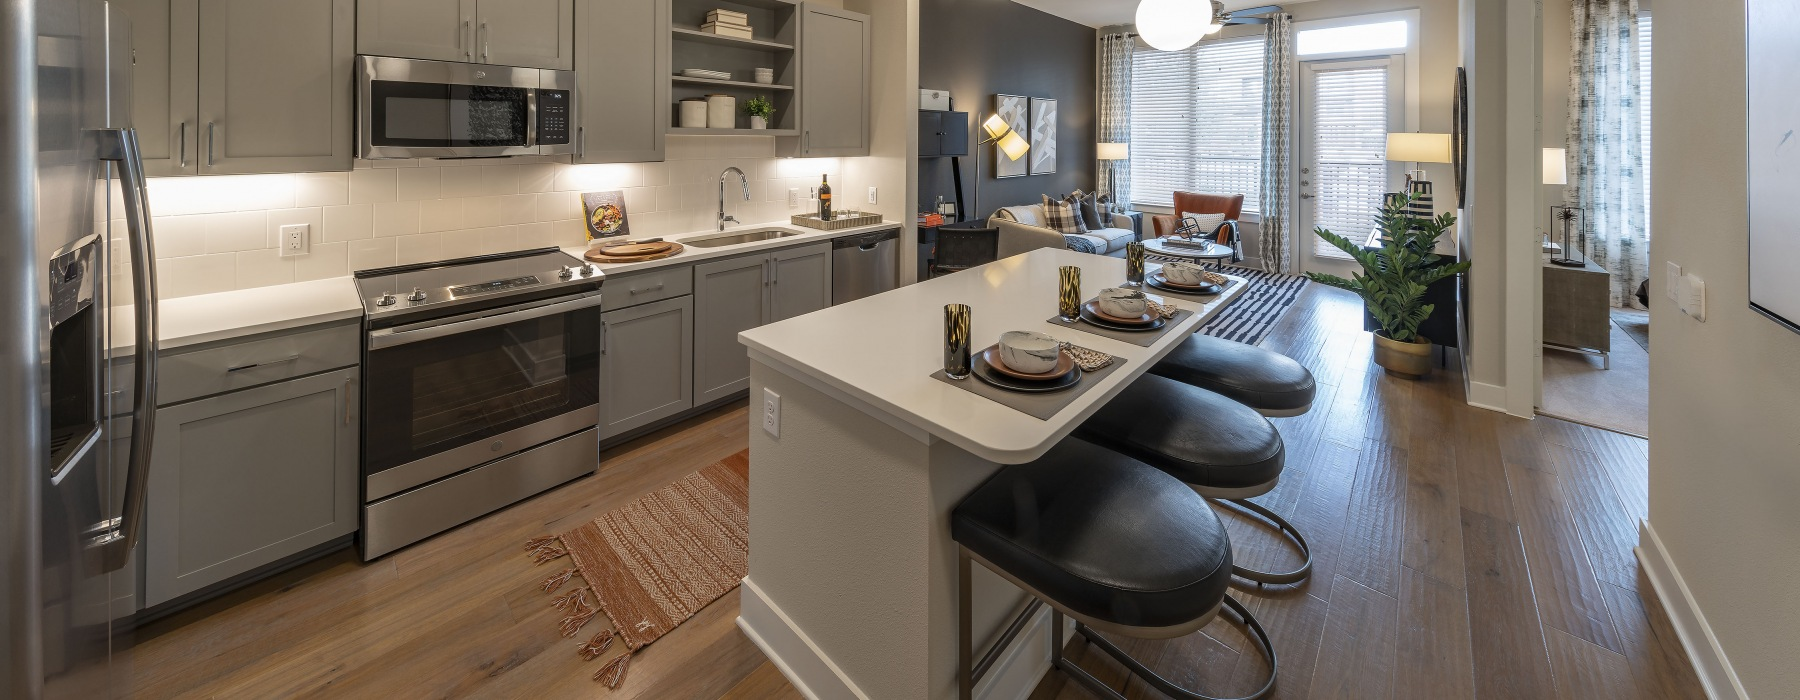 Open kitchen with an island and hardwood floors